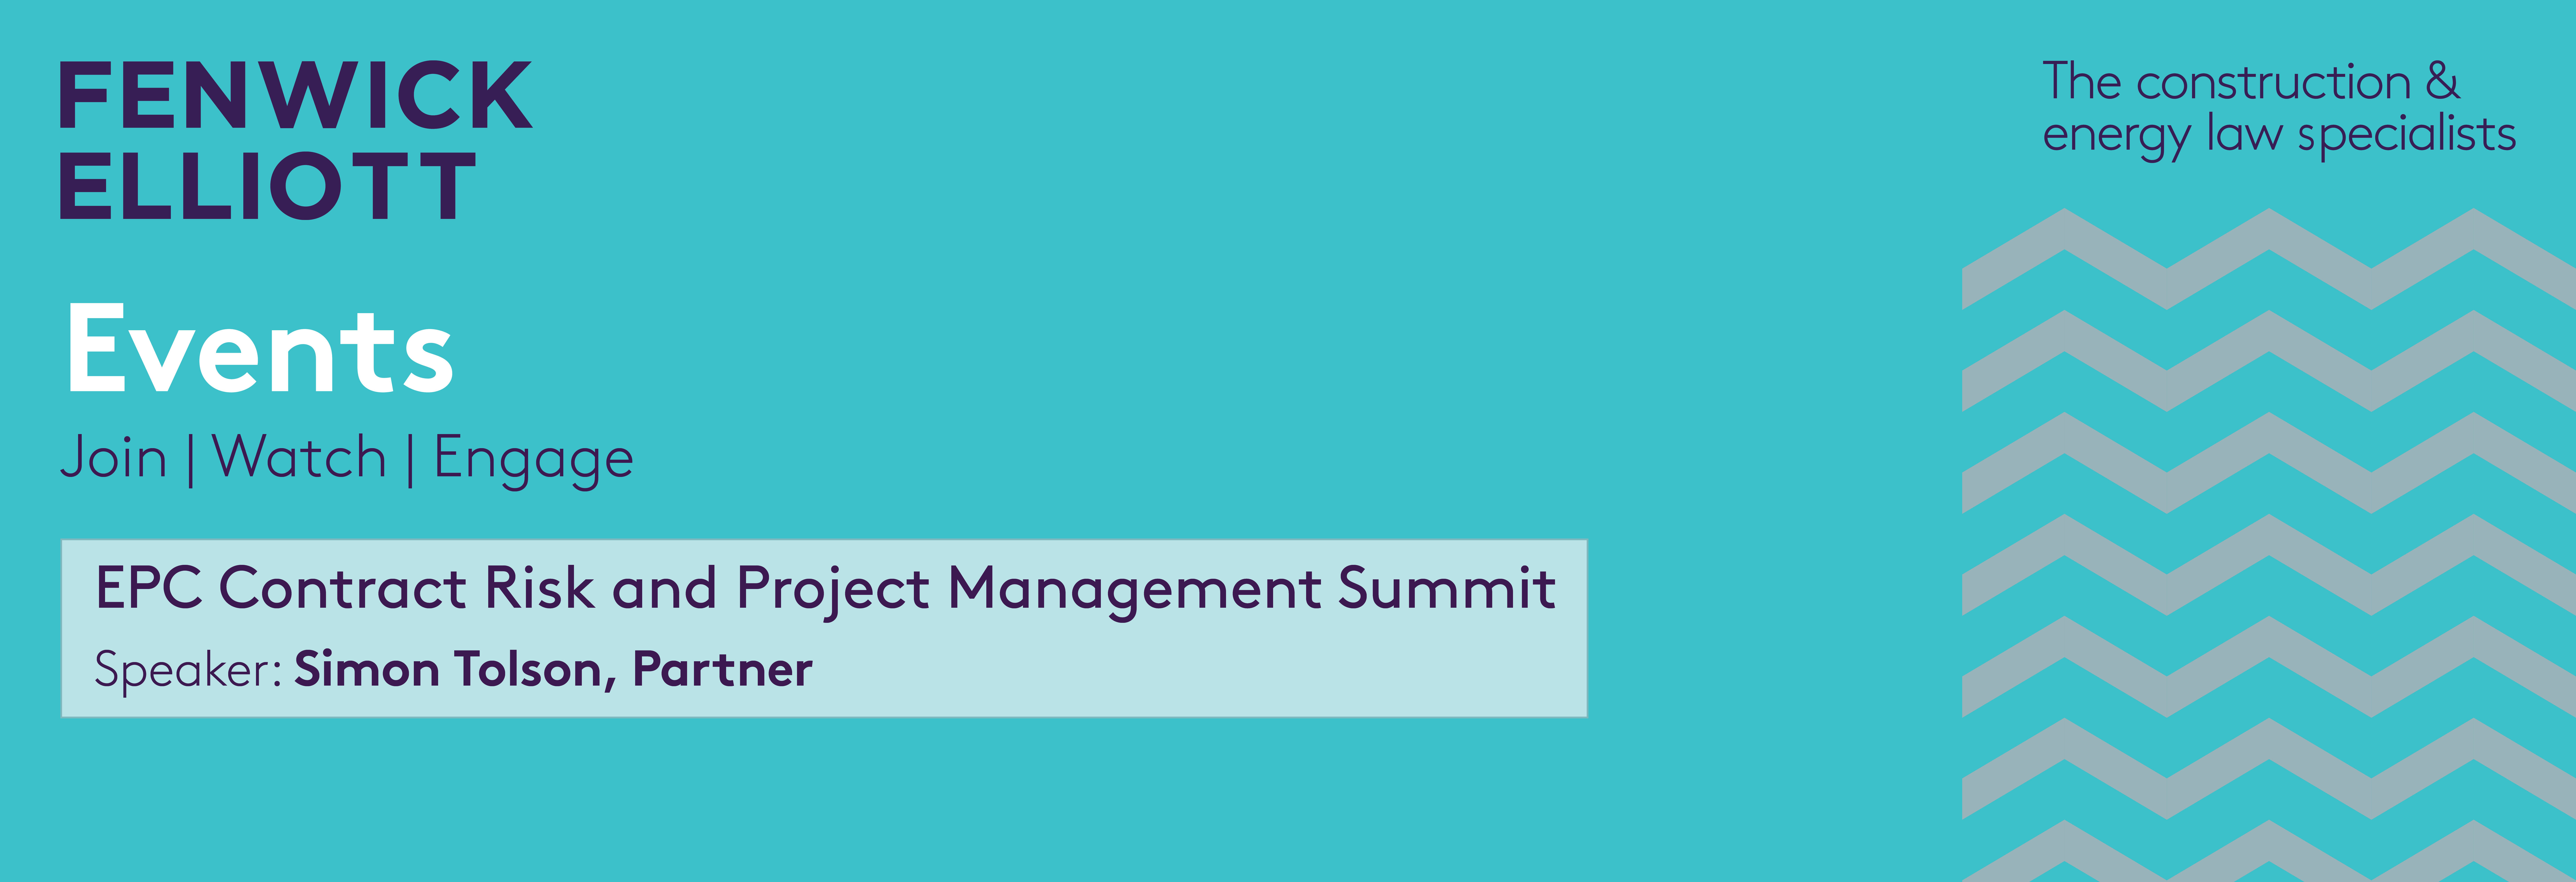 Banner for the 6th annual EPC Contract Risk & Project Management Summit